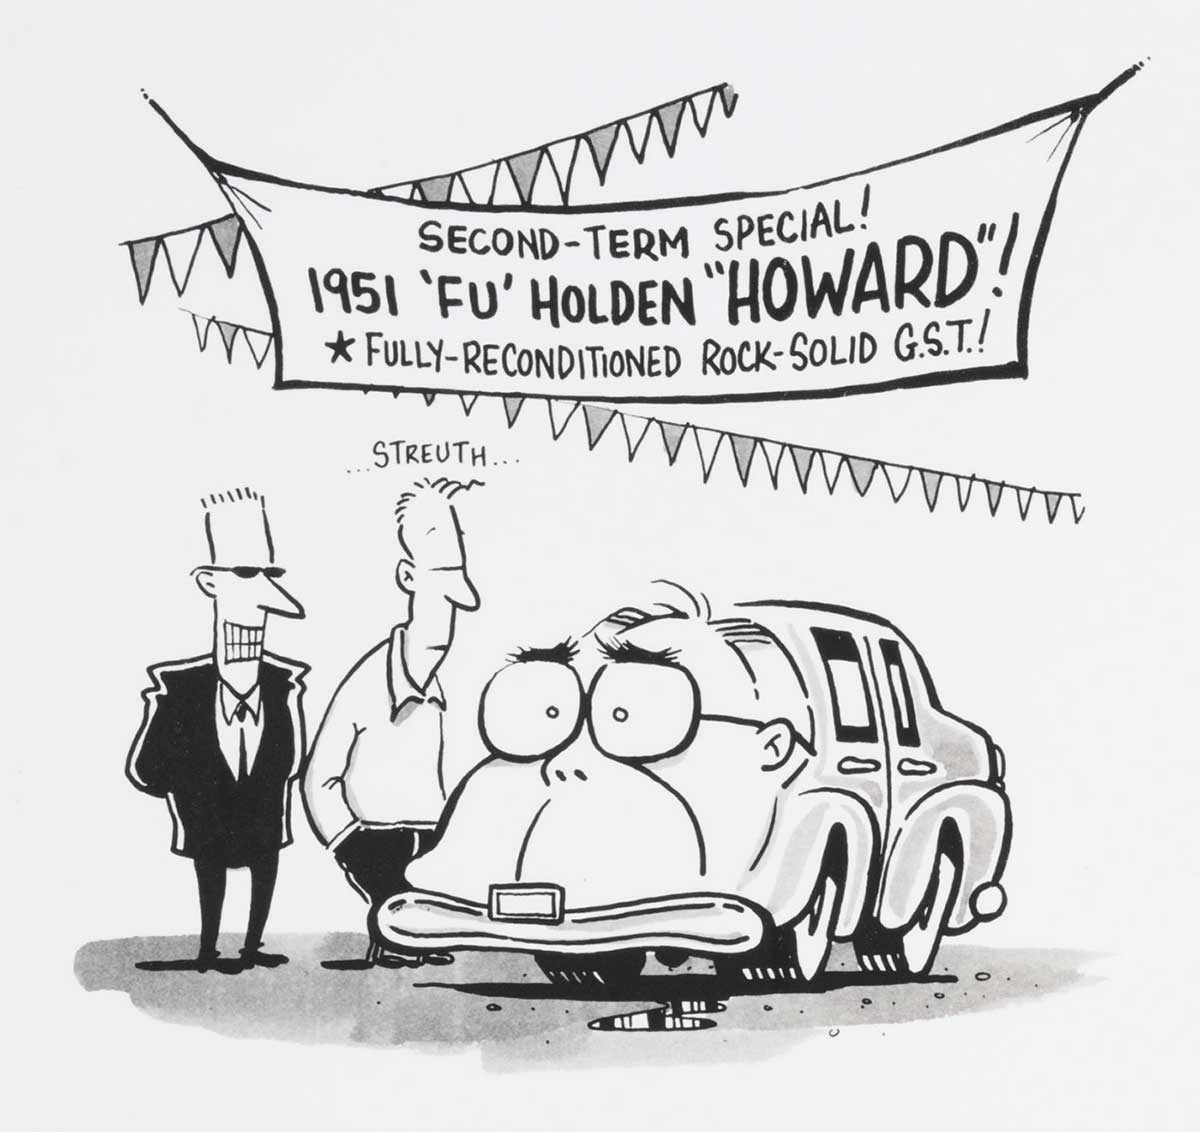 """Cartoon featuring two men looking at a car that has a caricature of John Howard's face as its front shape. A sign above the car reads 'SECOND-TERM SPECIAL! 1951 'FU' HOLDEN """"HOWARD""""! FULLY-RECONDITIONED ROCK-SOLID G.S.T.!' - click to view larger image"""